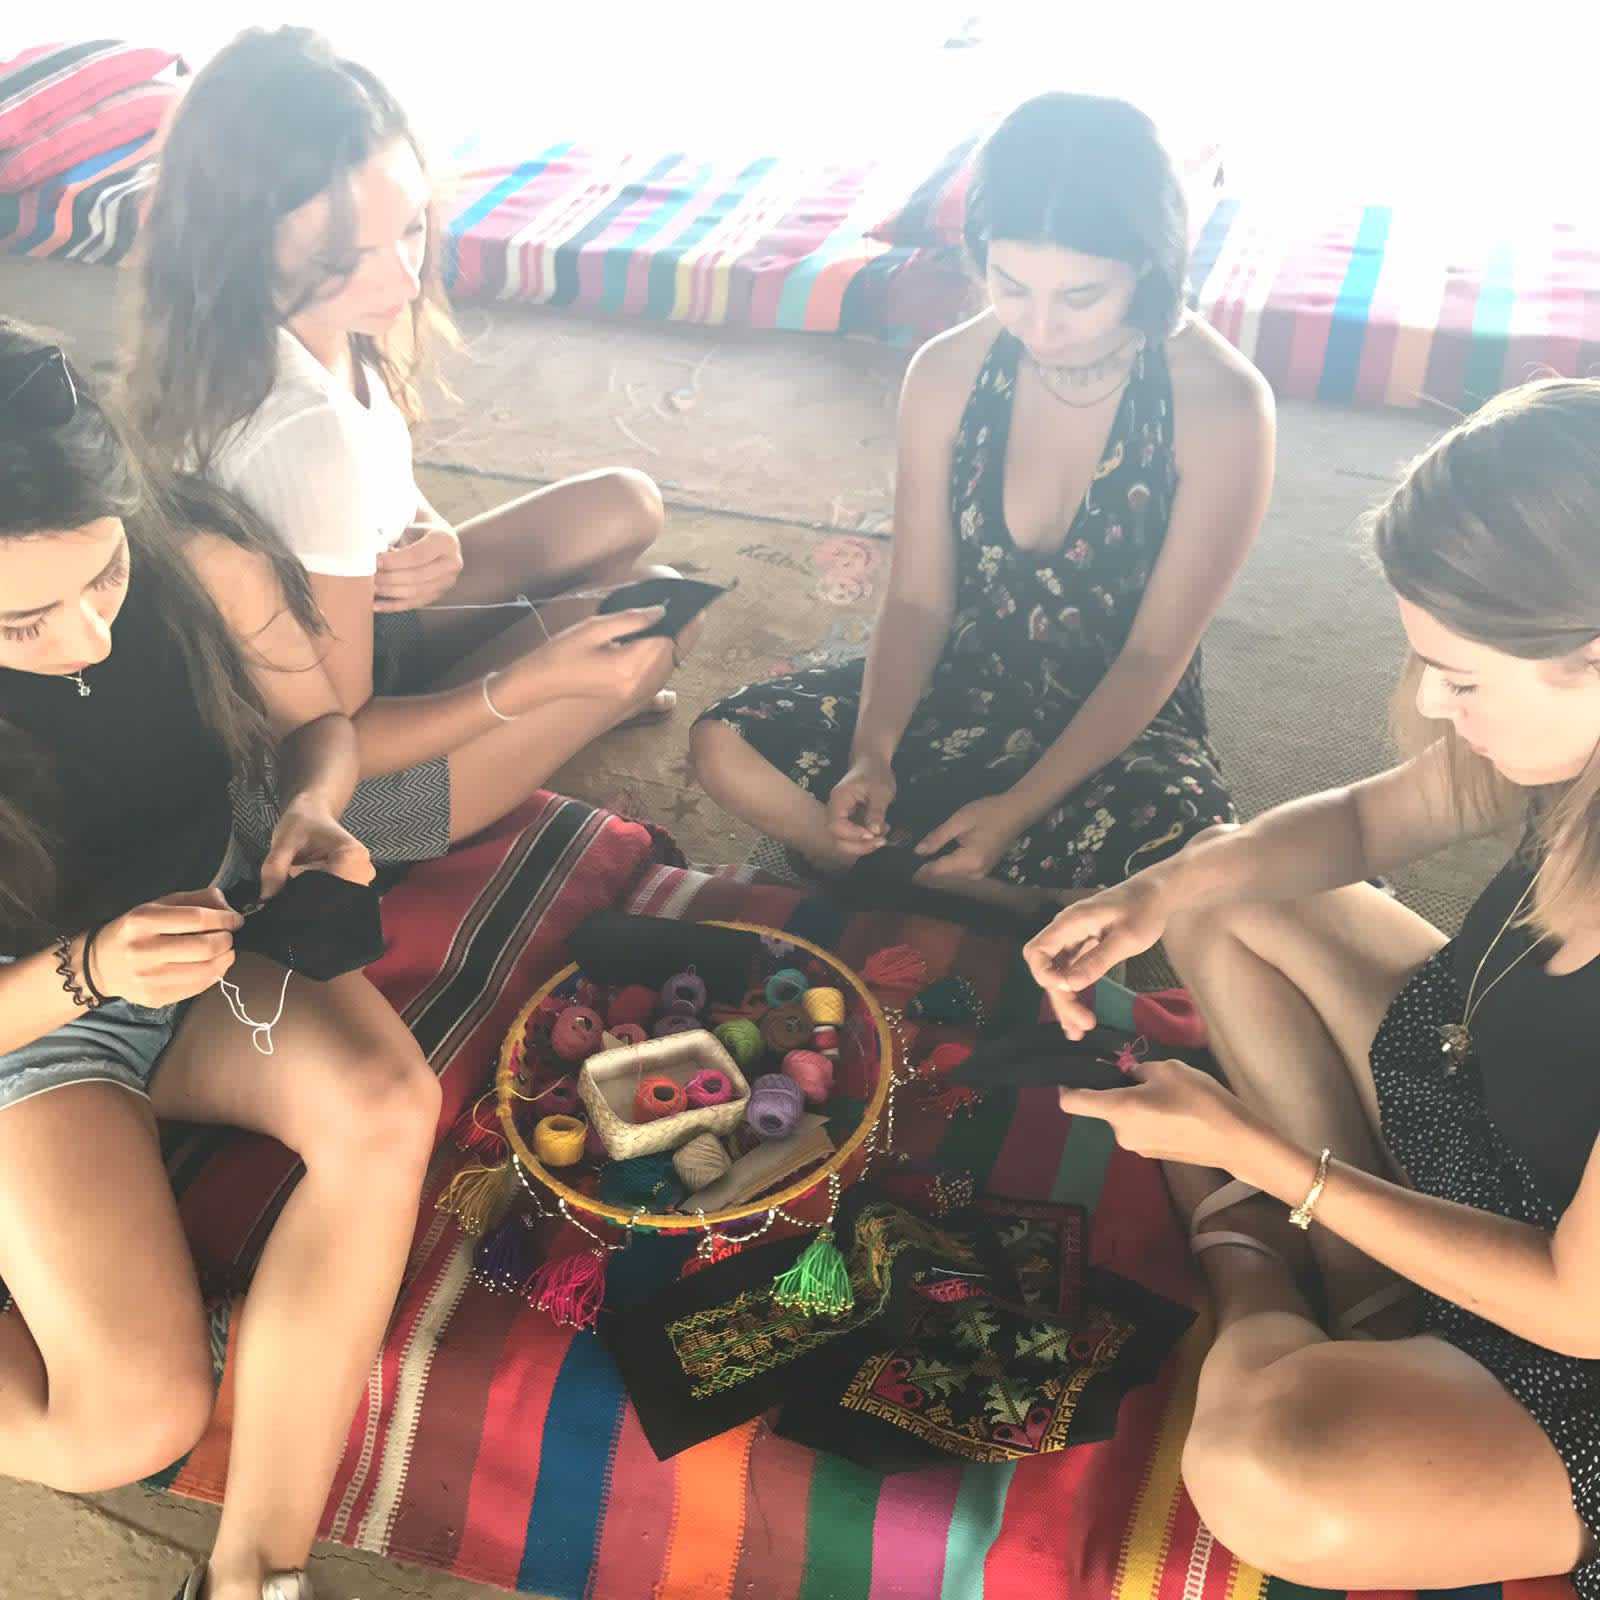 Fashionating Israel participants at an embroidery workshop (Courtesy)